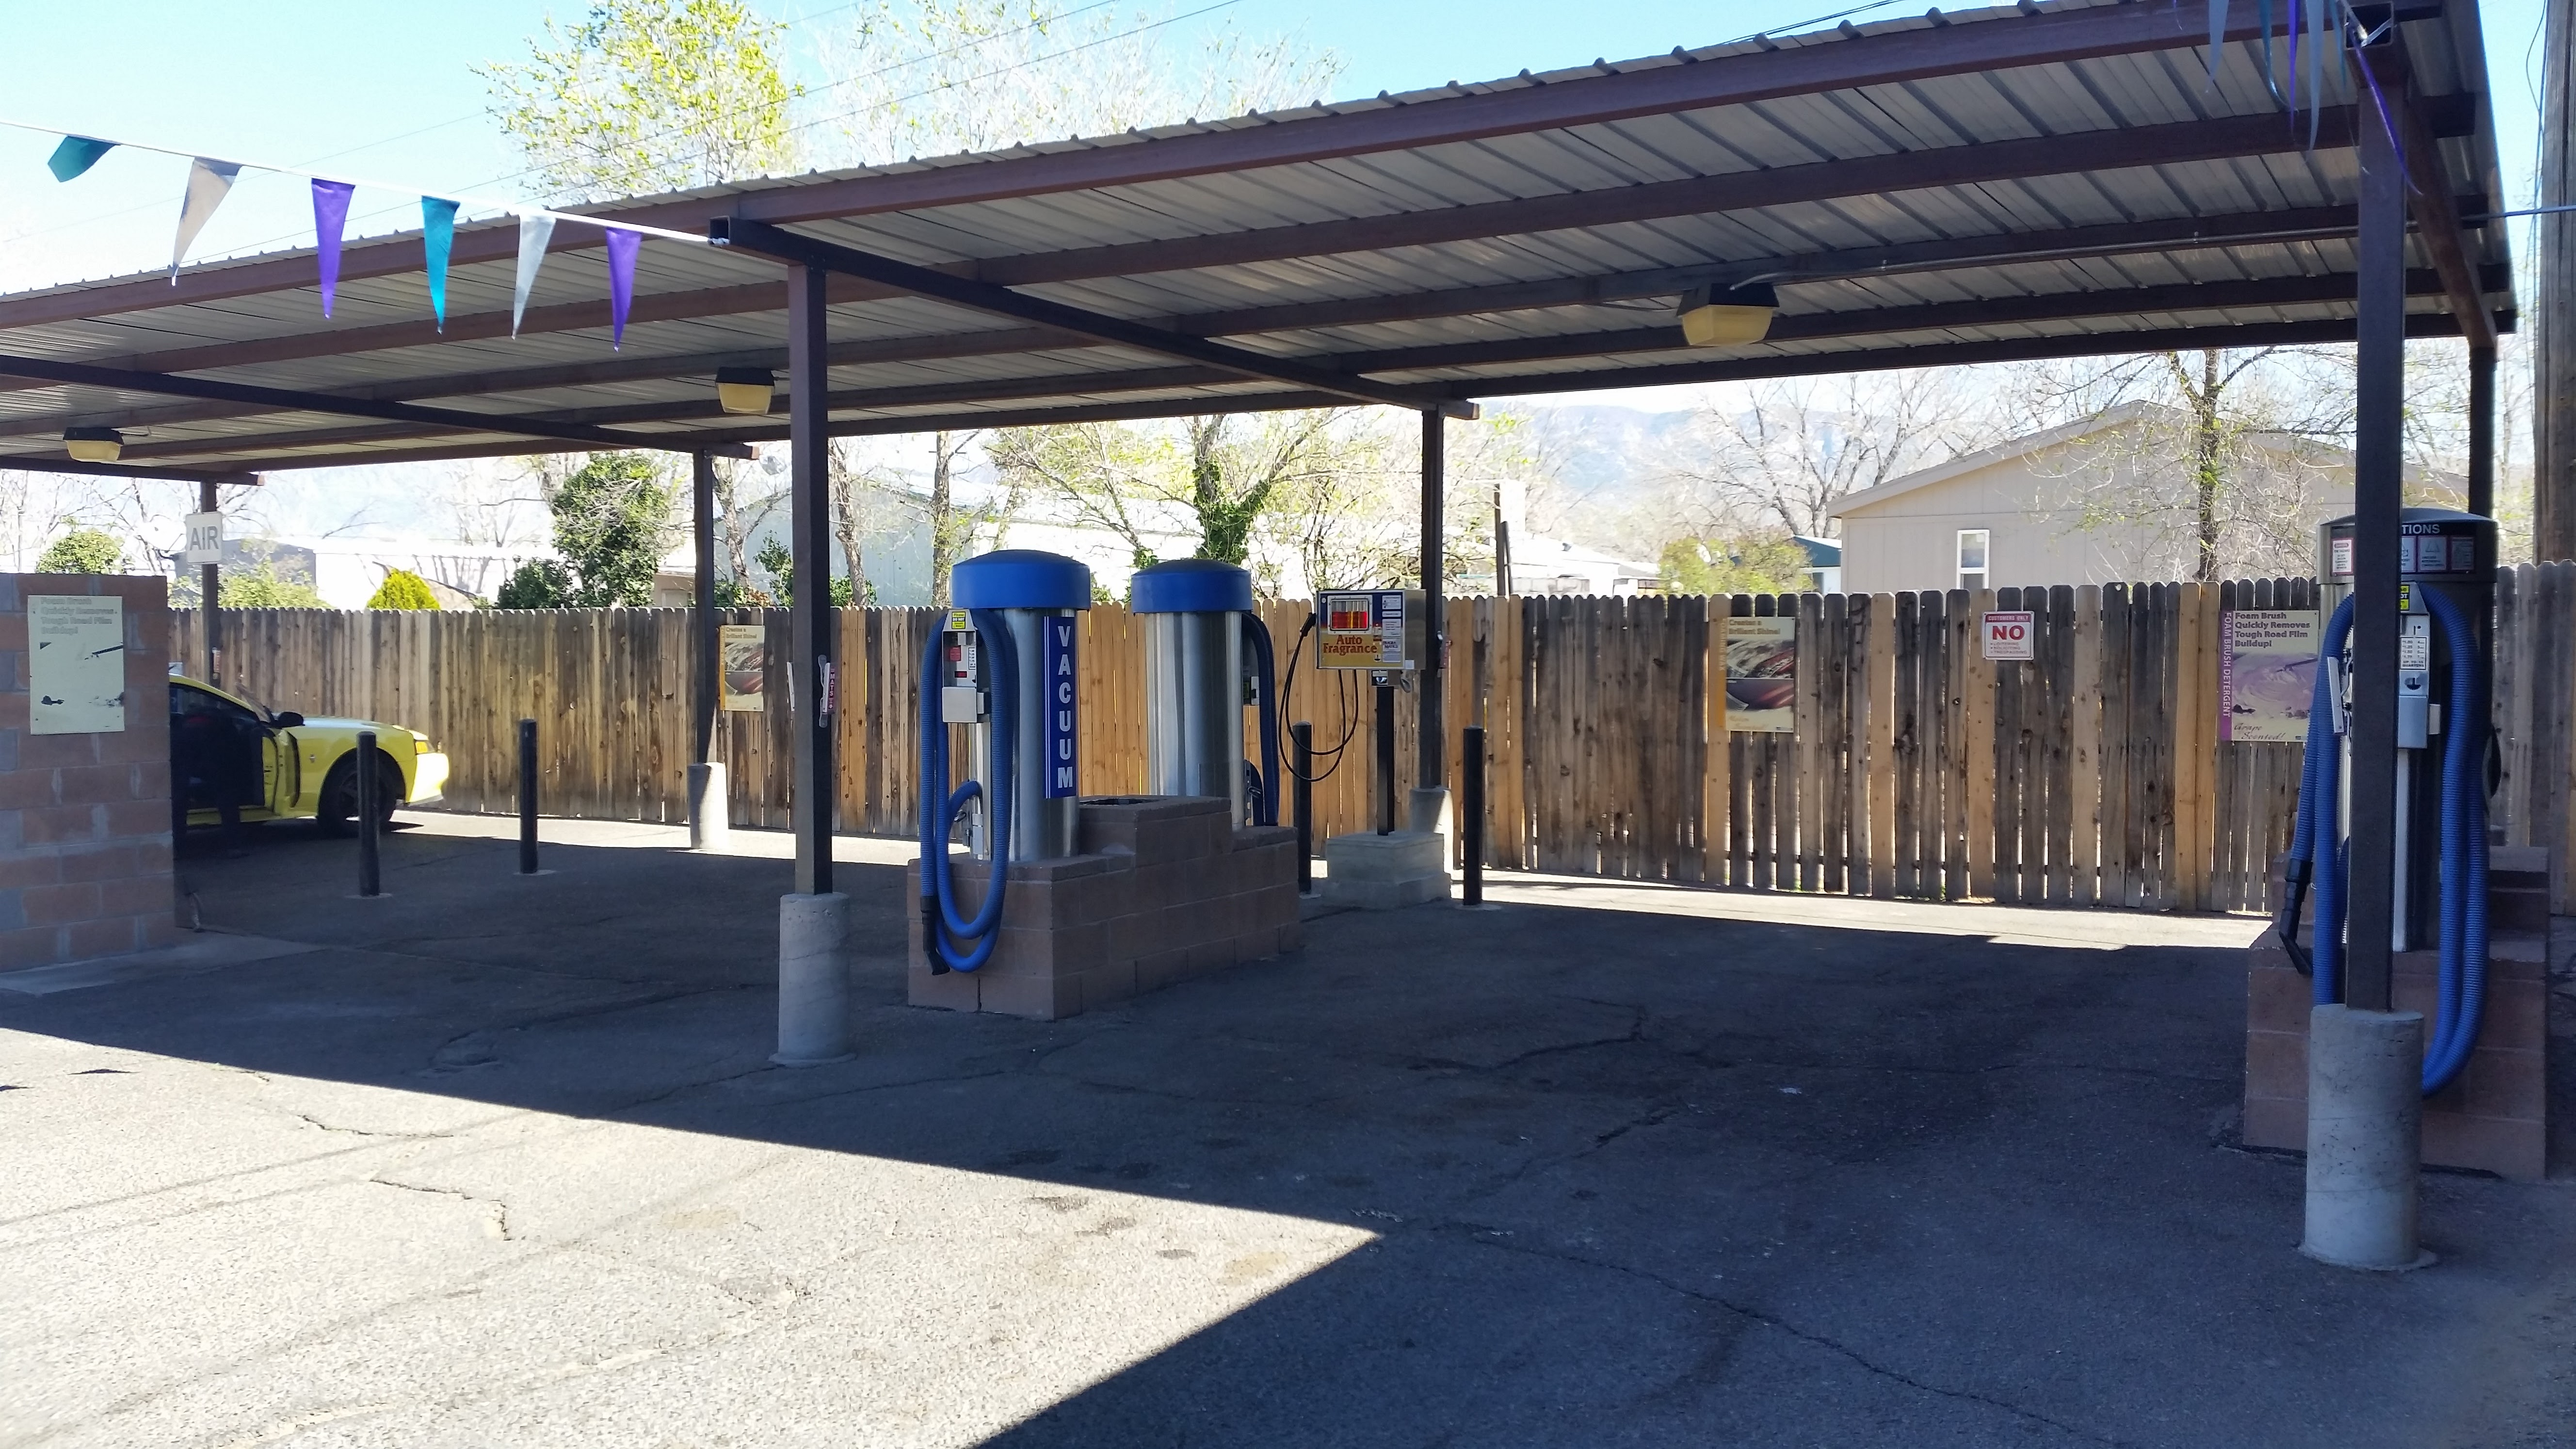 Emissions Testing Albuquerque >> Brillon Brothers Car Wash And Emission Testing 212 Wyoming